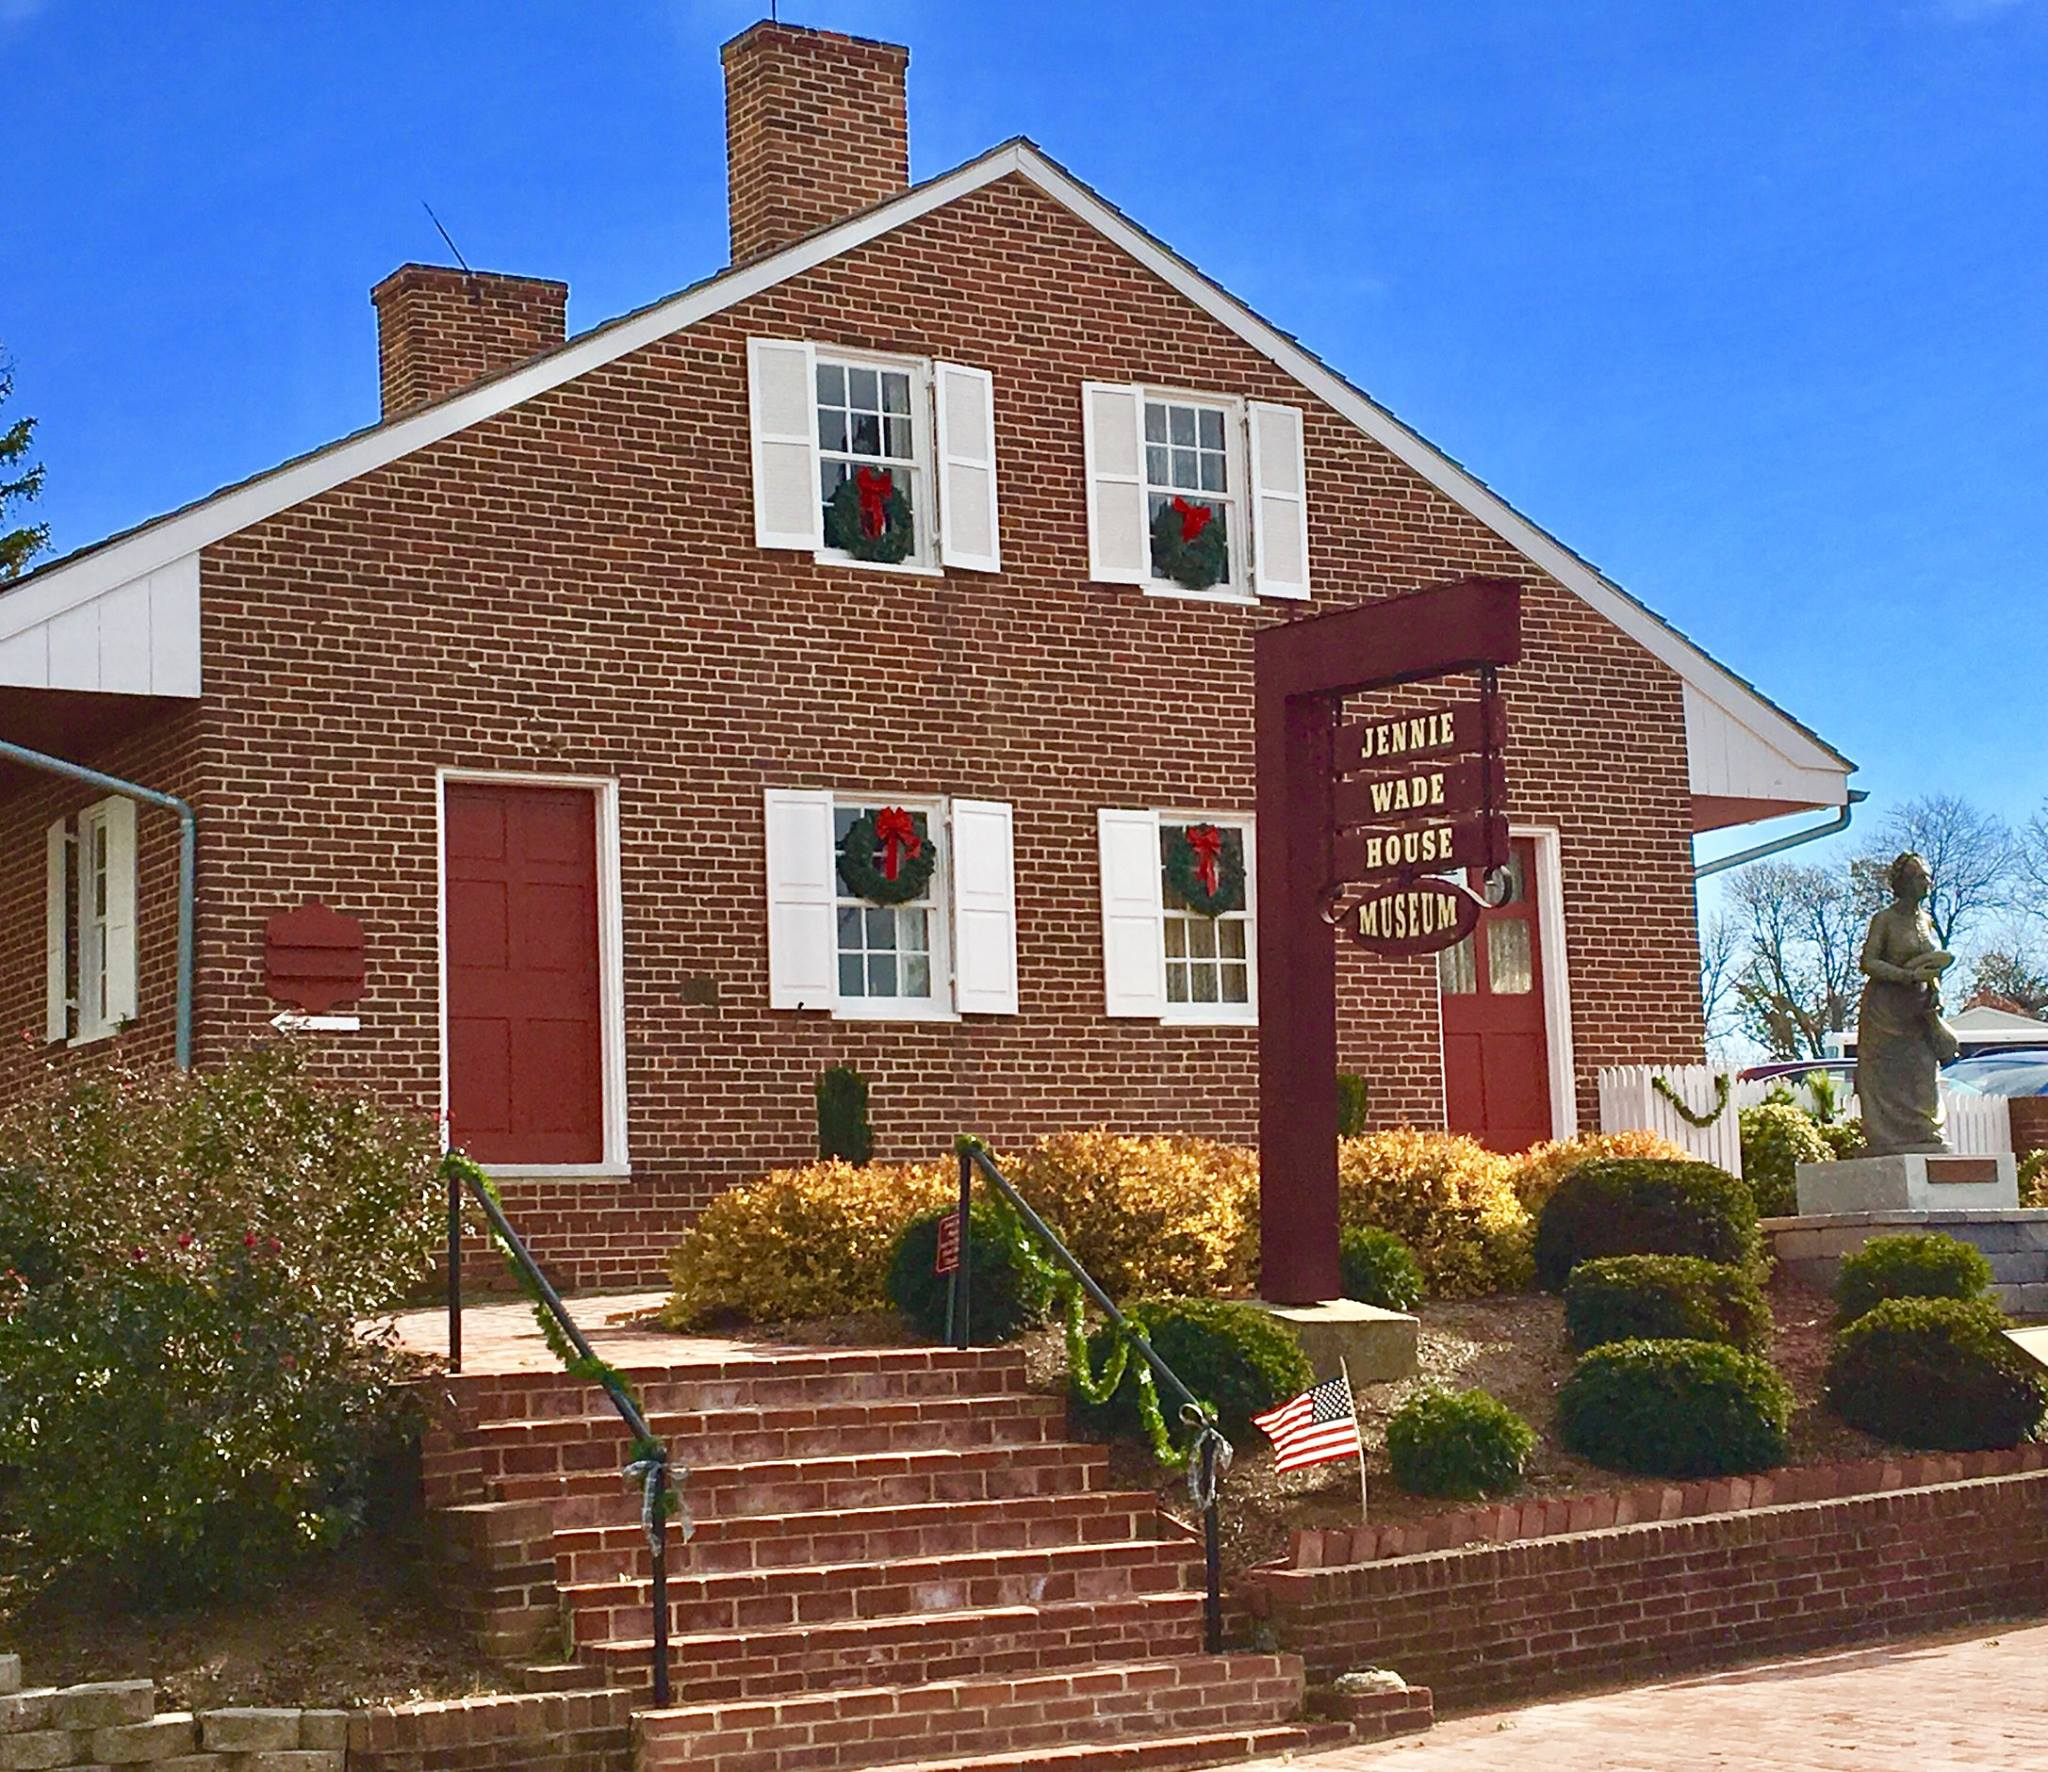 Beautiful Place to Visit In Gettysburg in Pennsylvania-Jenny Wade House